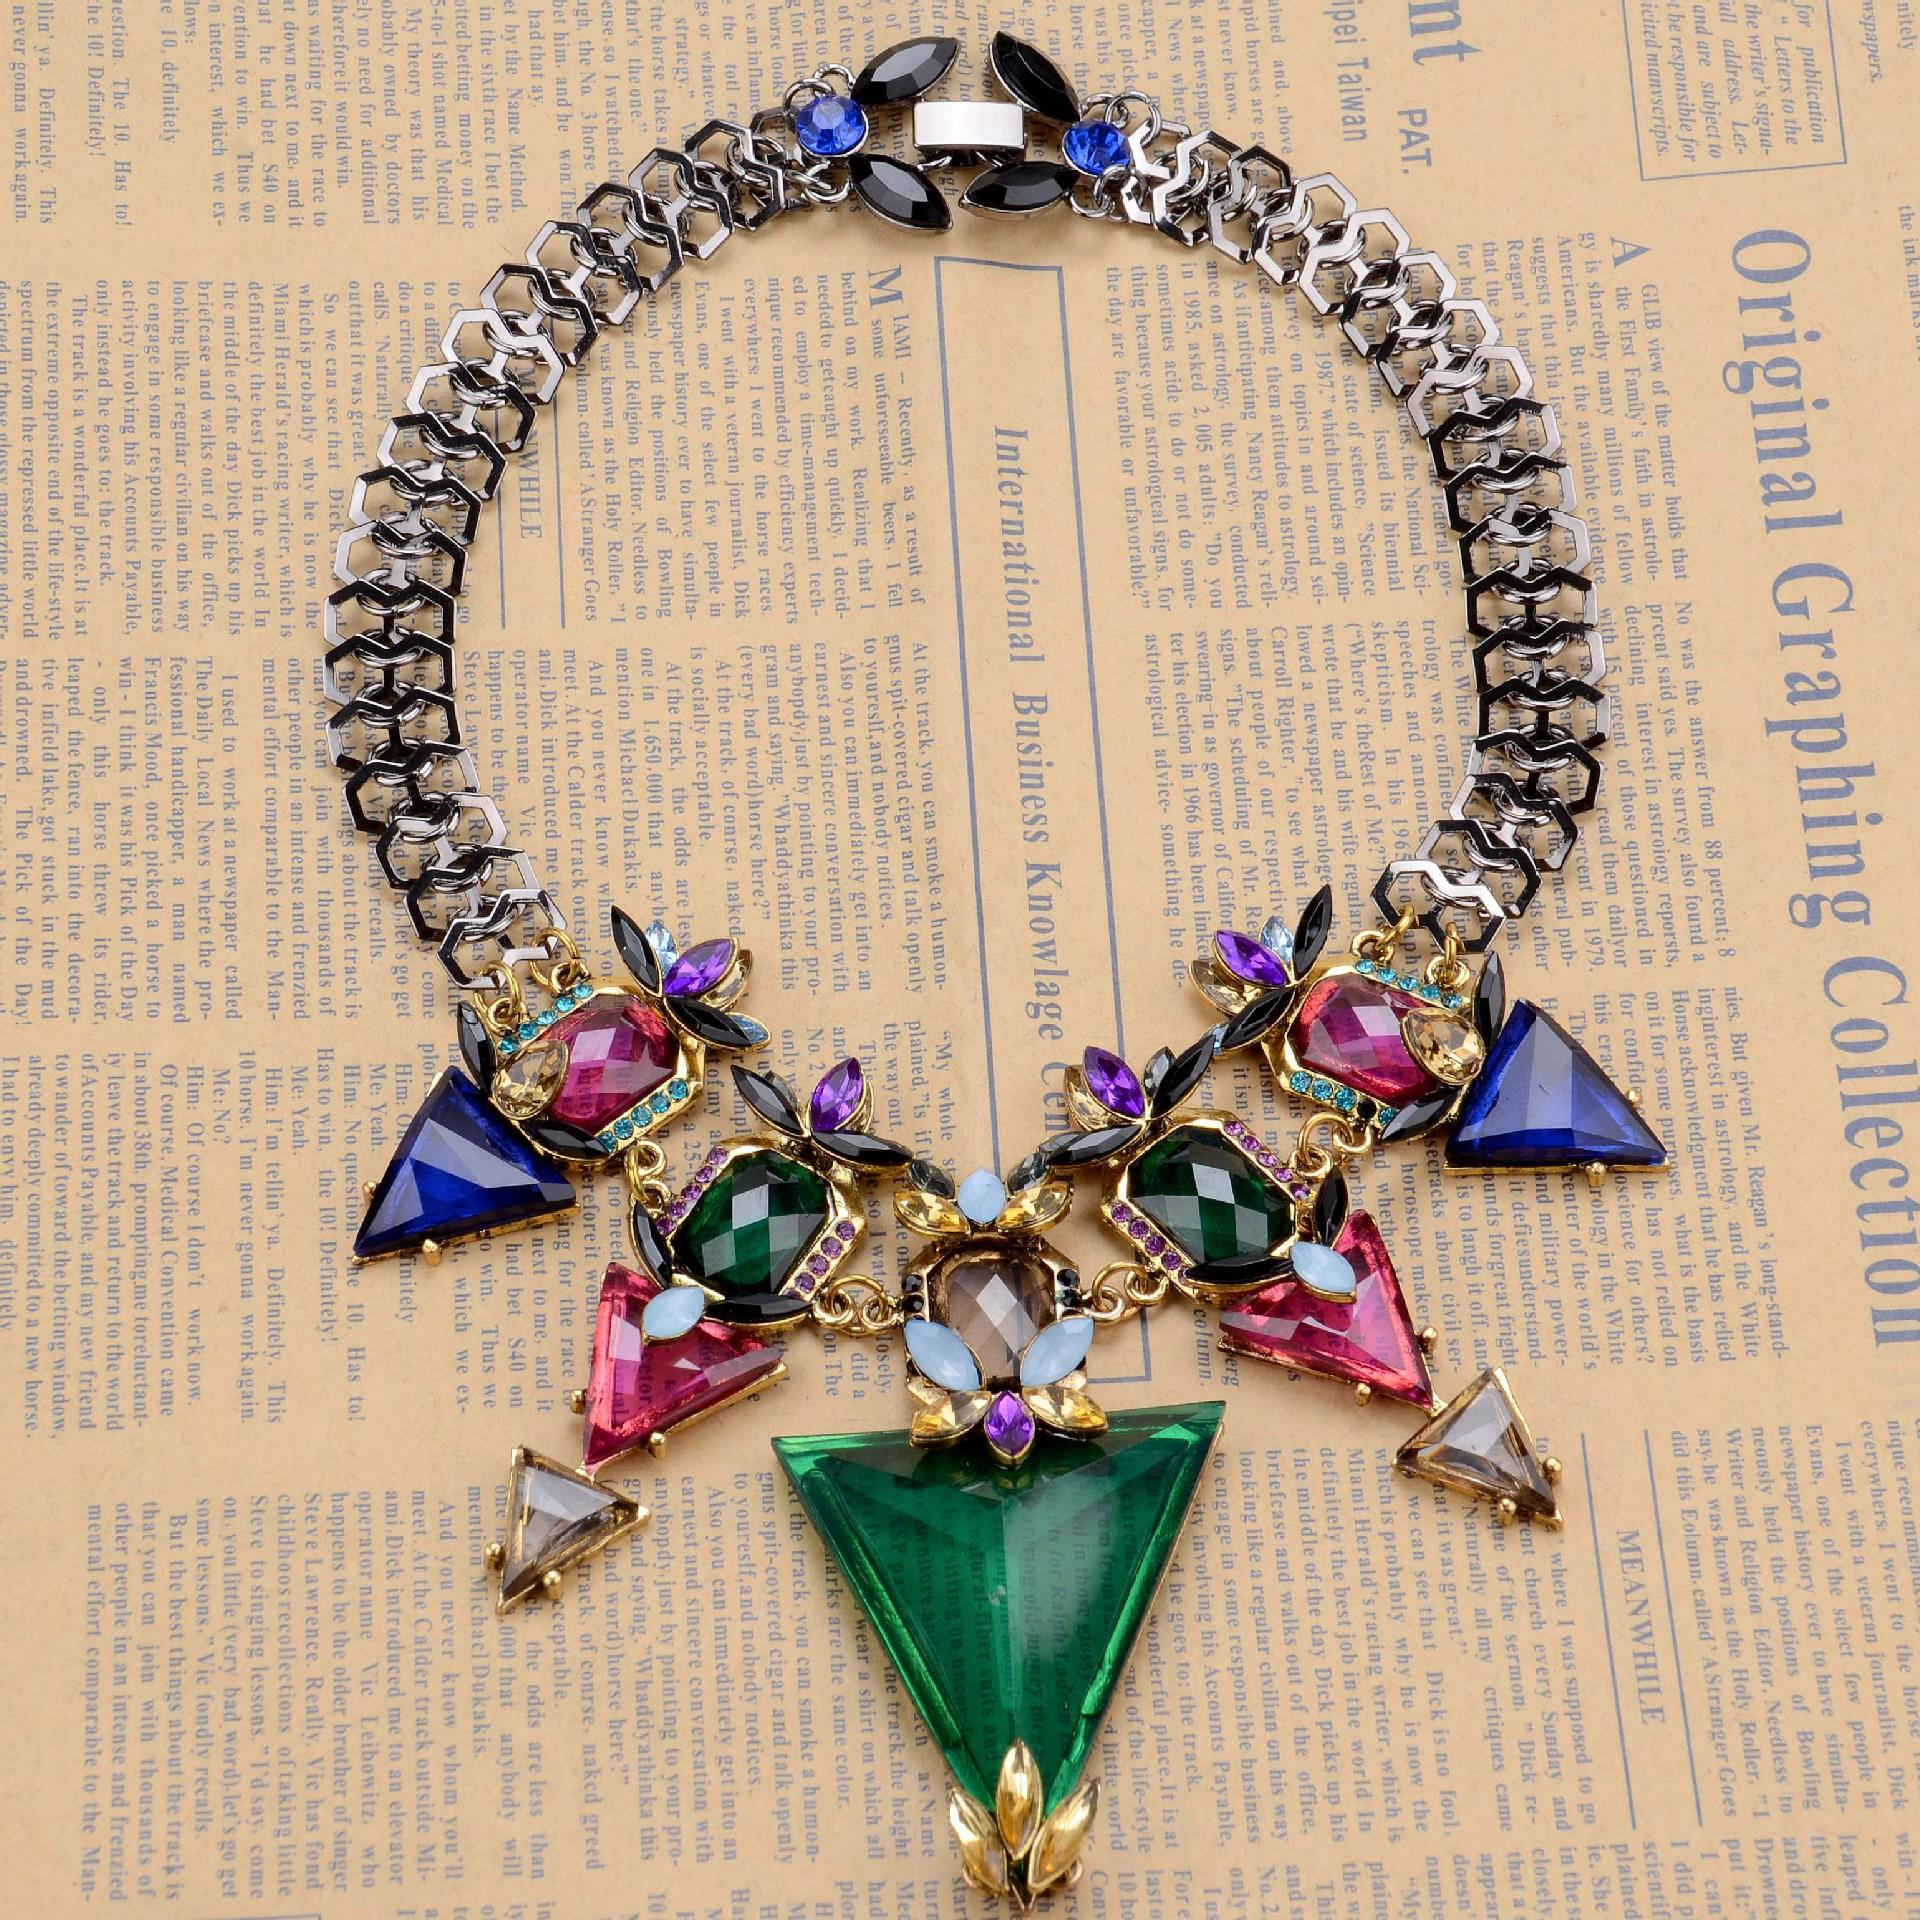 2 pcs/lot Triangle Necklace Ladies Clavicle Chain Luxury Full Diamonds Evening Chain 2020 designer necklace gift for women girl21